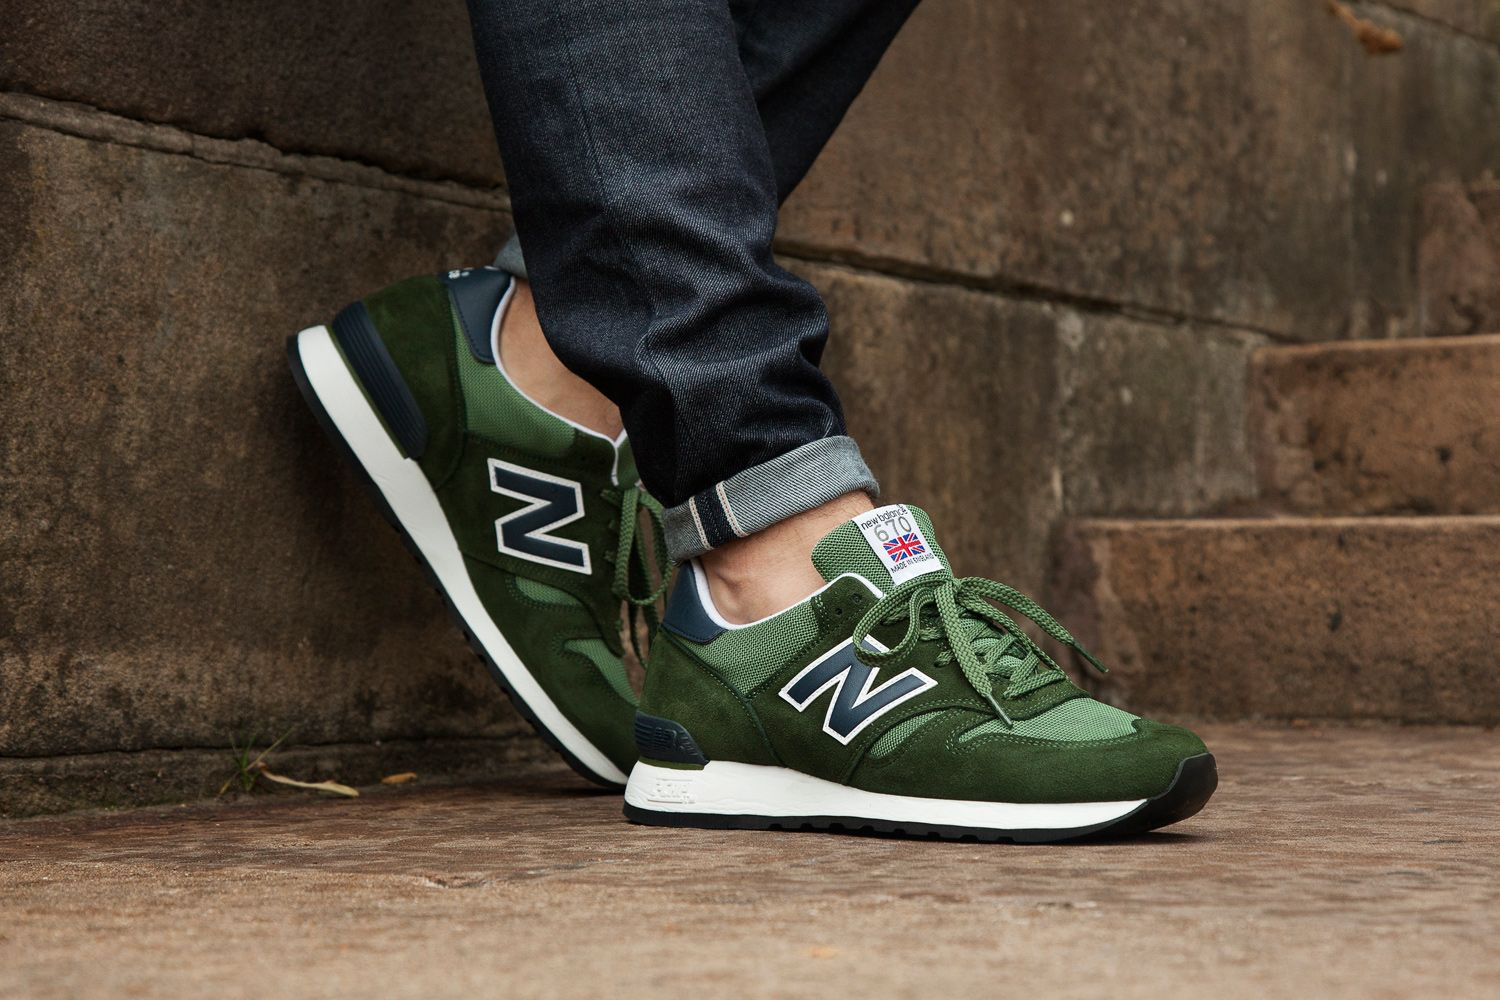 New Balance 670 Made in England Pack | Fresh | New balance